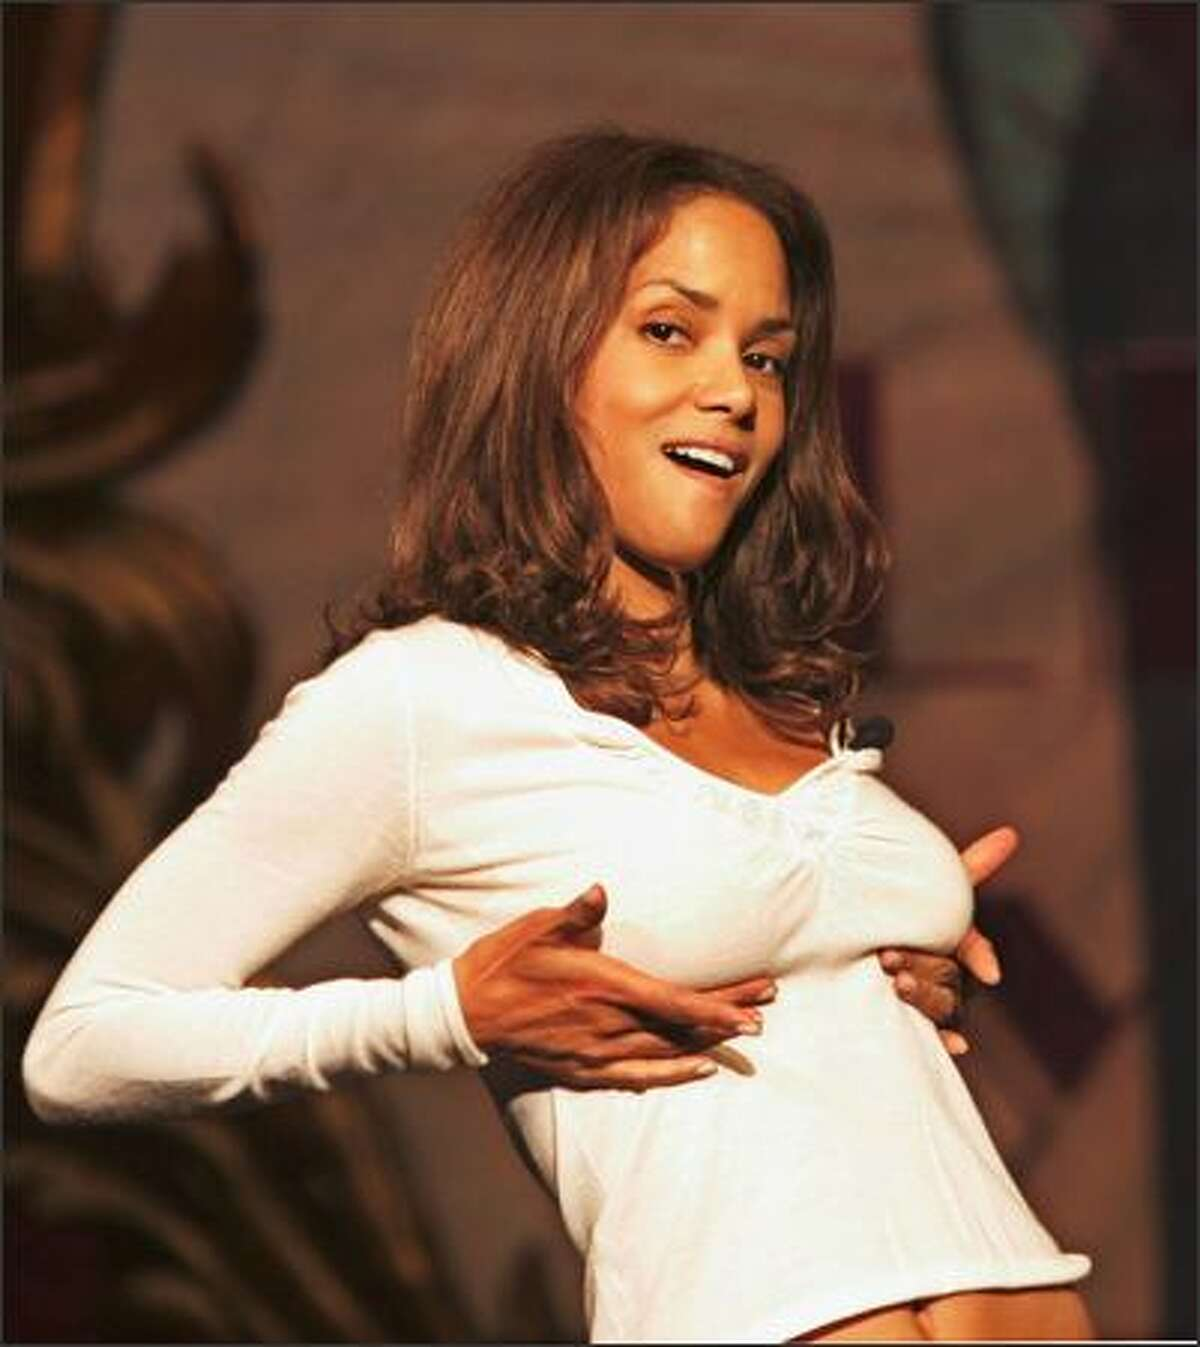 Halle Berry demonstrates the purpose of a brassiere for befuddled Harvard folks during last week's festivities honoring the Hasty Pudding woman of the year. The game Halle was roasted for her pretty, awful portrayal in